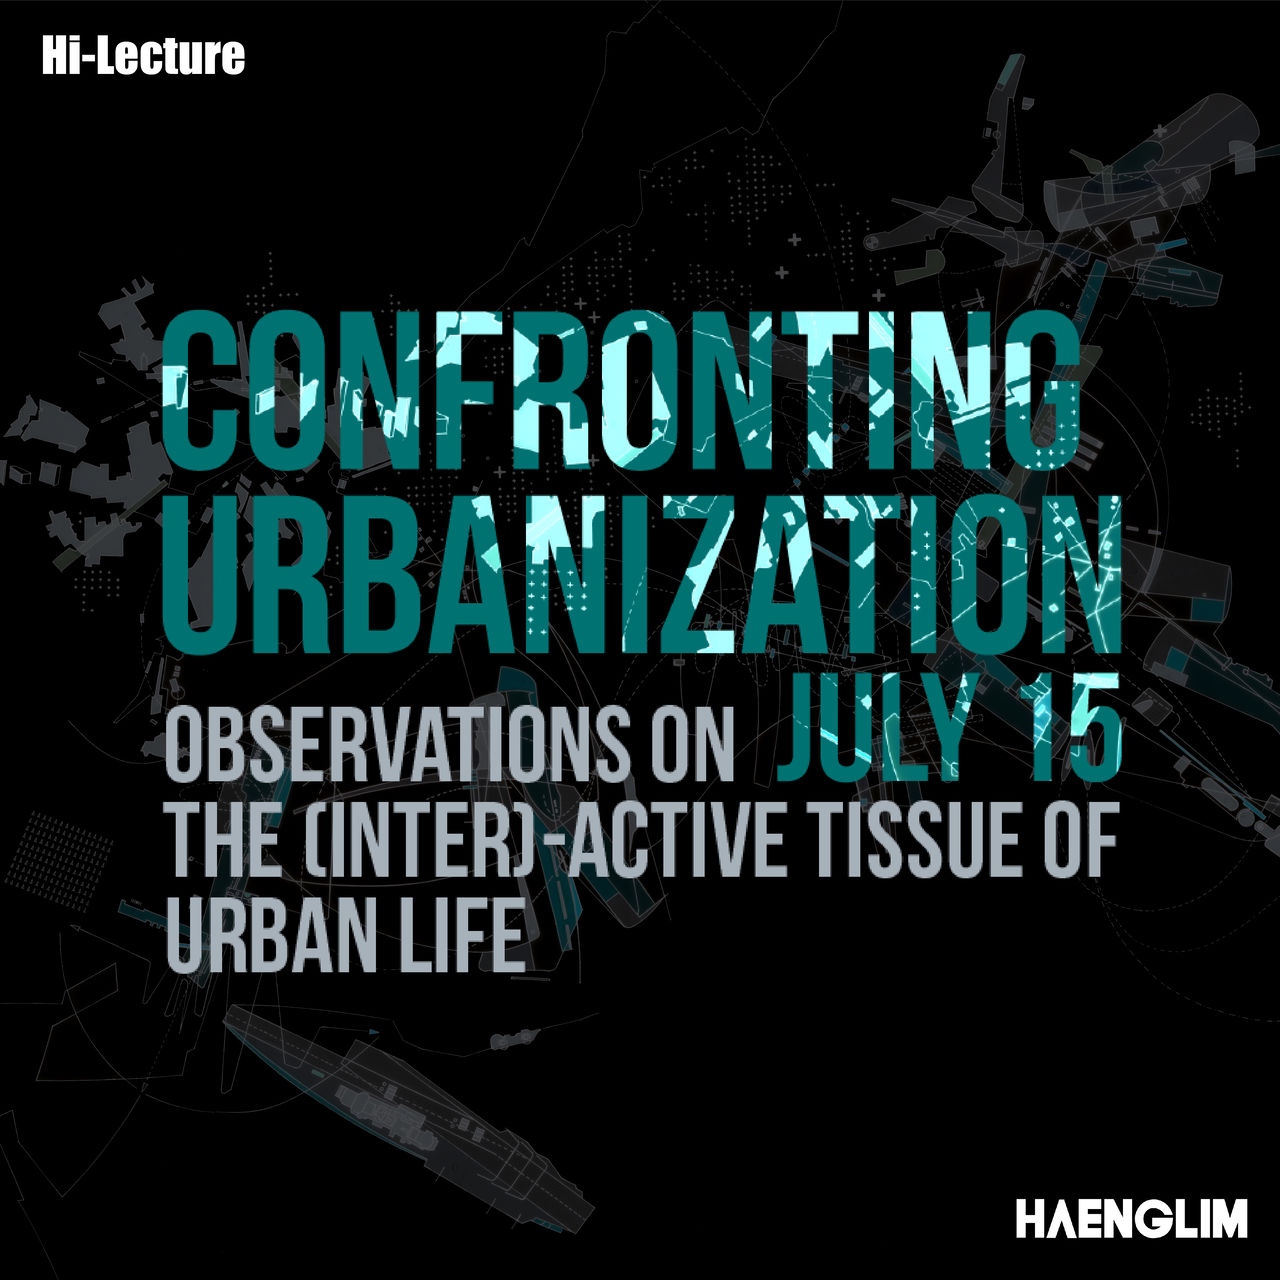 <p><strong><font size='2'>Hi-Lecture 2019<p>Petra Kempf (PhD, Professor,  Washington University in St.Louis Sam Fox School)</font><br><font size='5'>Confronting Urbanization observations on the (inter)-active tissue of urban life</font>